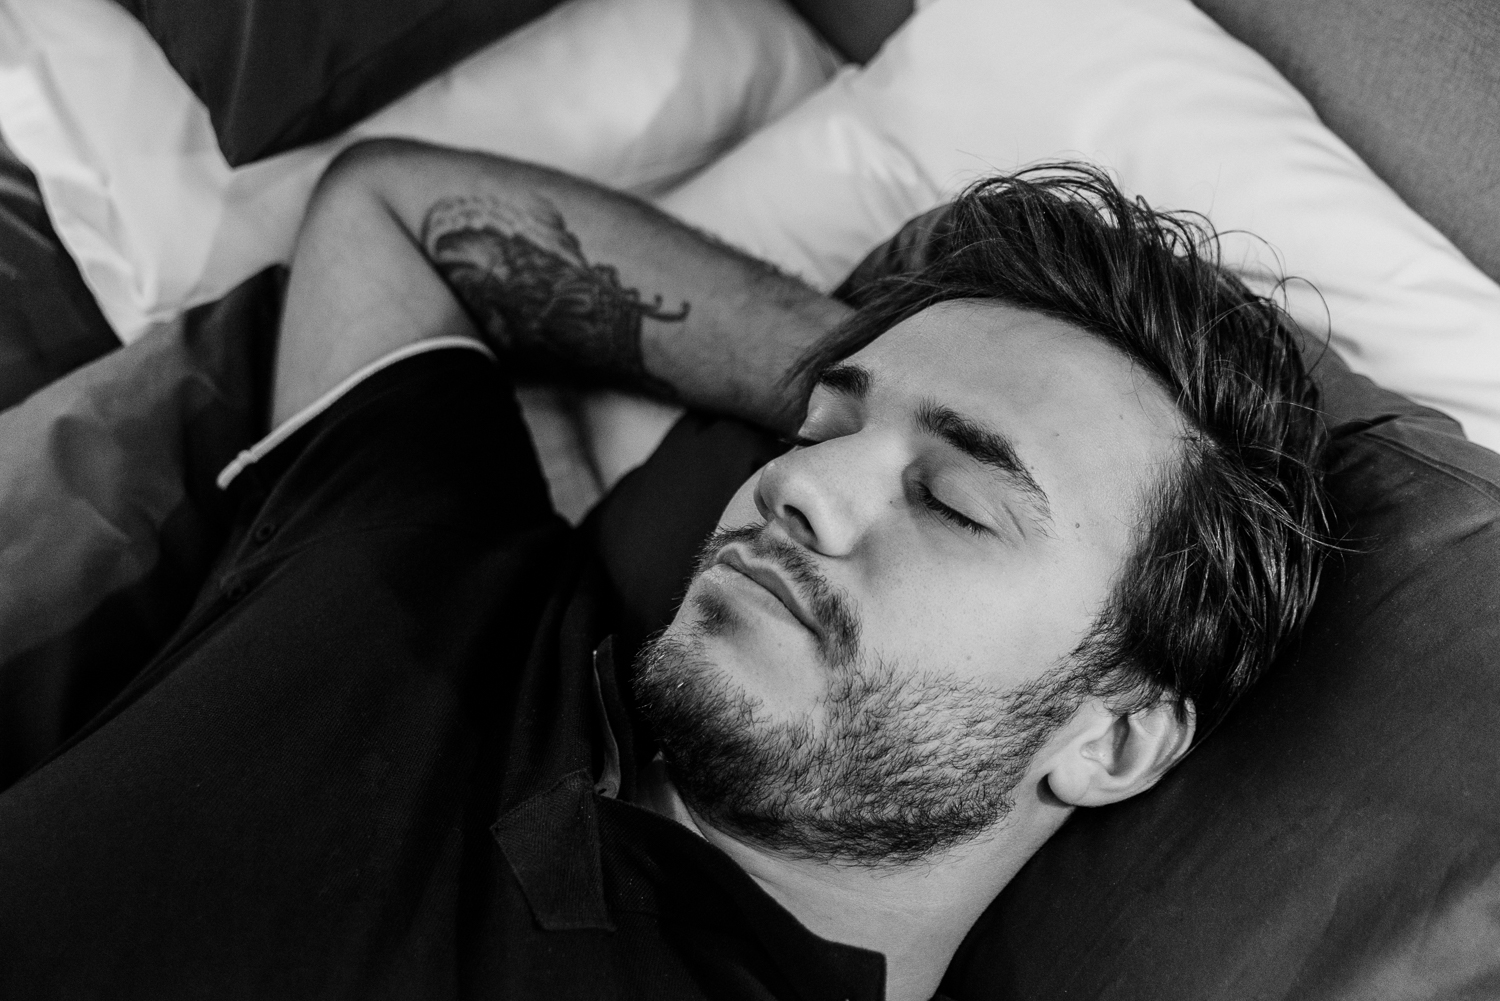 Man Sleeping in Bed - Black and White Photo